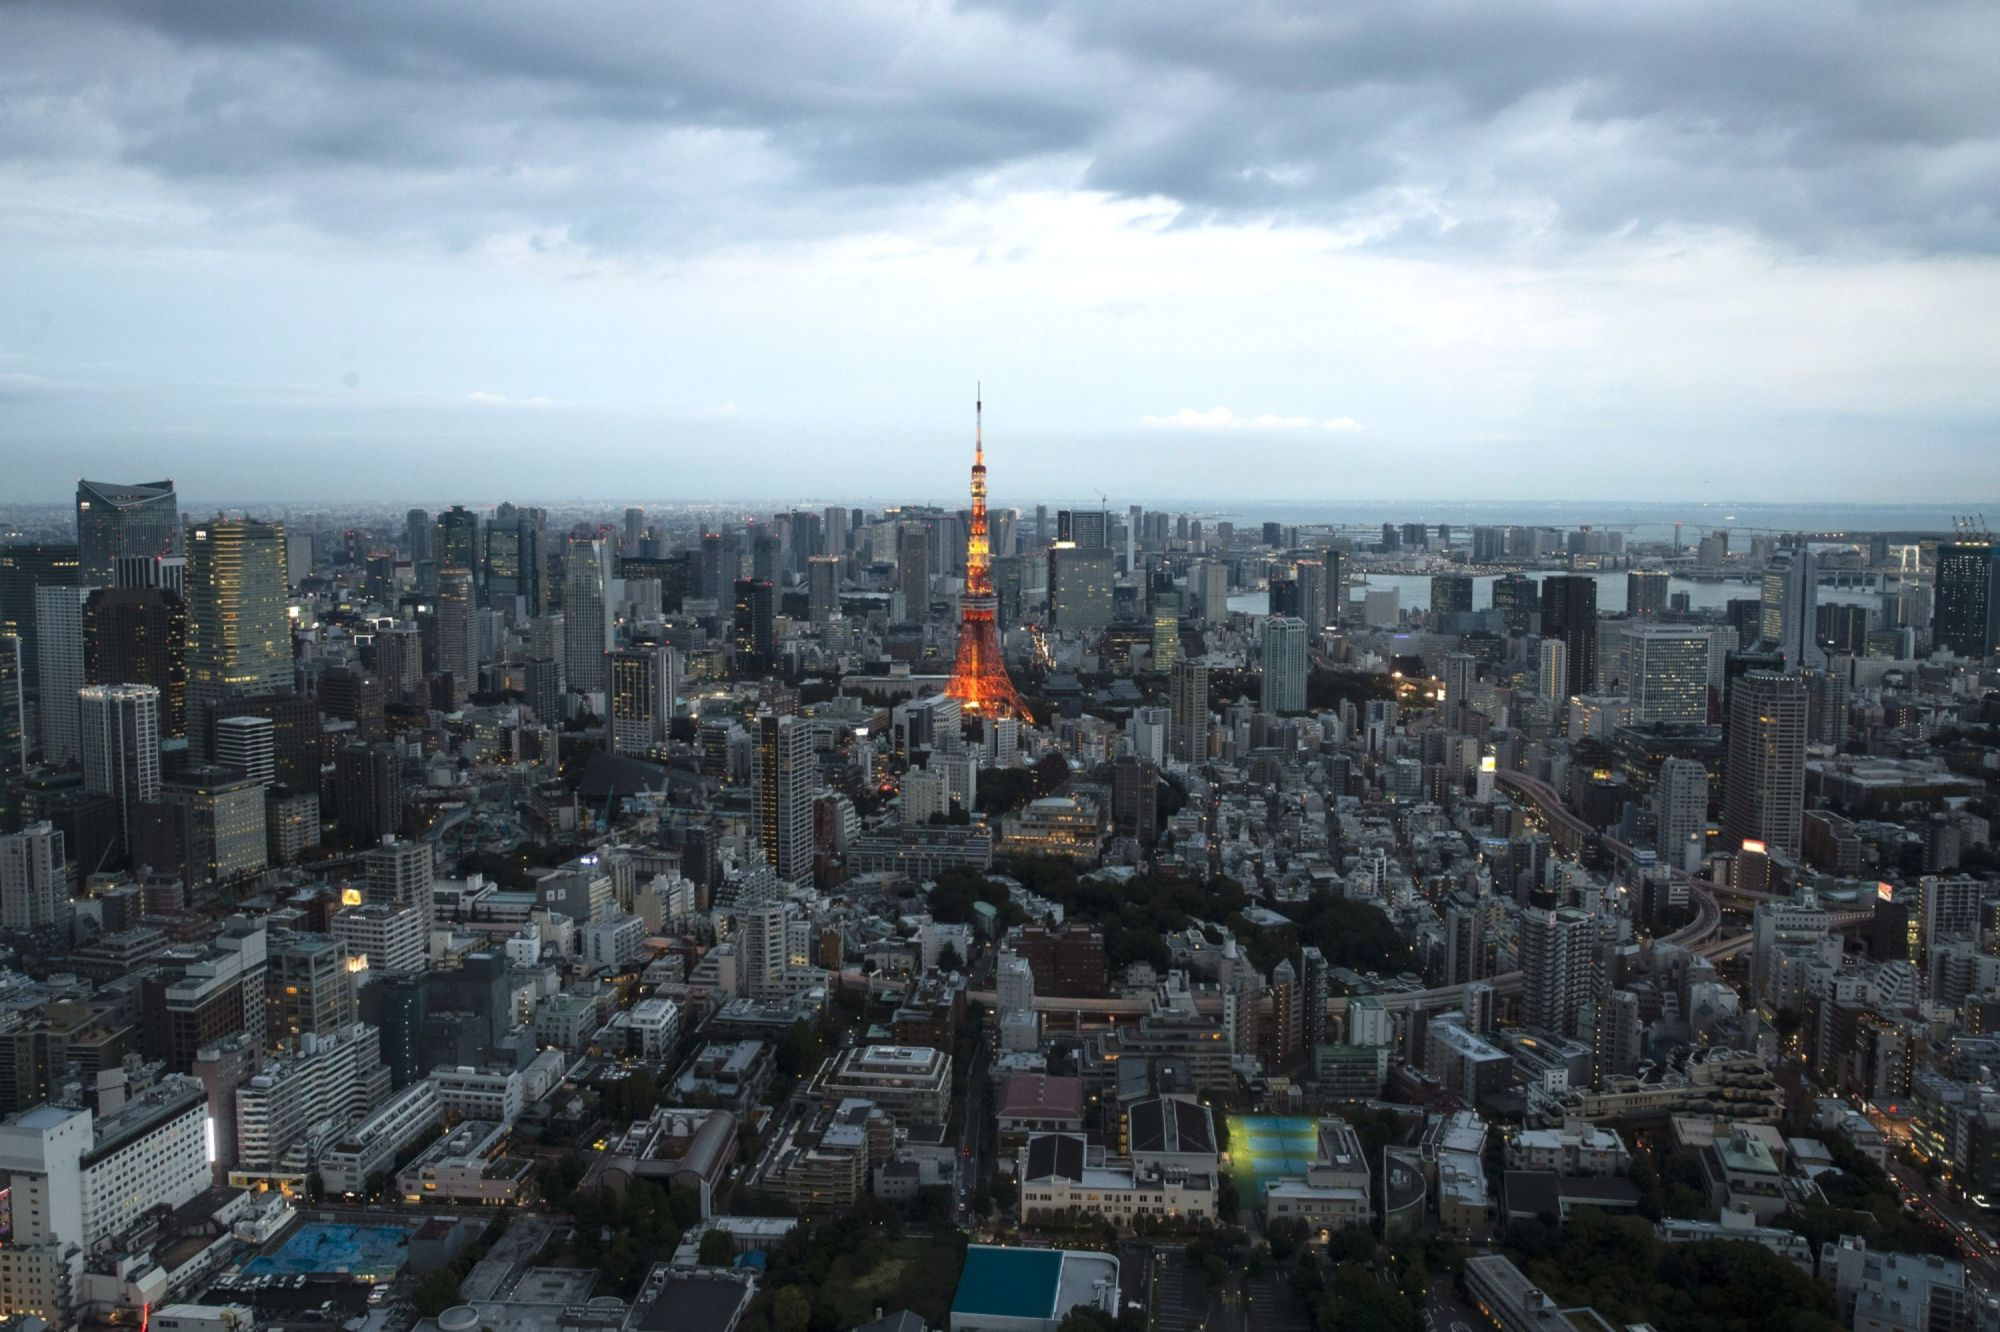 The Tokyo Metropolitan Government aims to achieve net-zero carbon dioxide emissions by 2050, according to a blueprint of its strategy unveiled on Friday.   BLOOMBERG